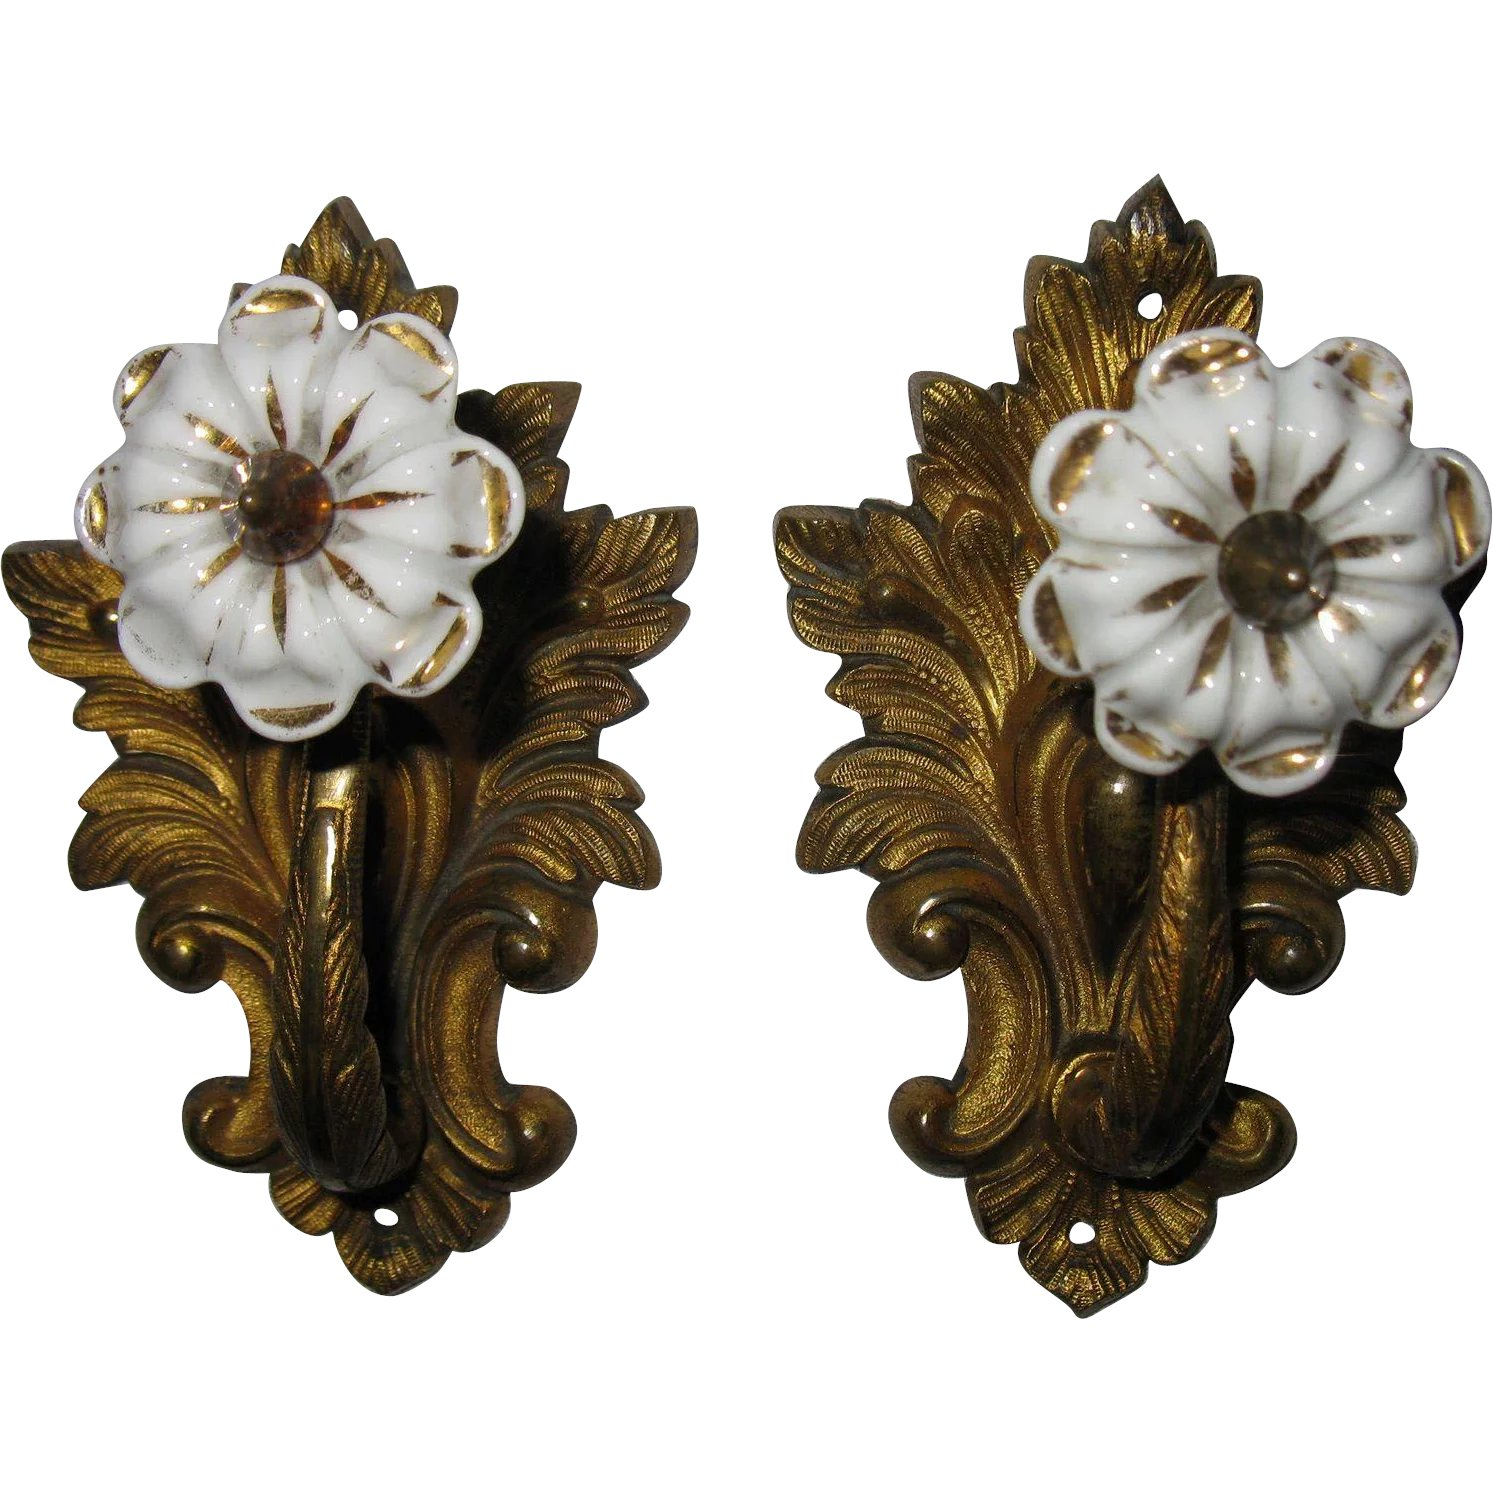 Antique Bronze Curtain Tie Backs Pair Of Antique French Drapery Curtain Tiebacks Gold Ormolu